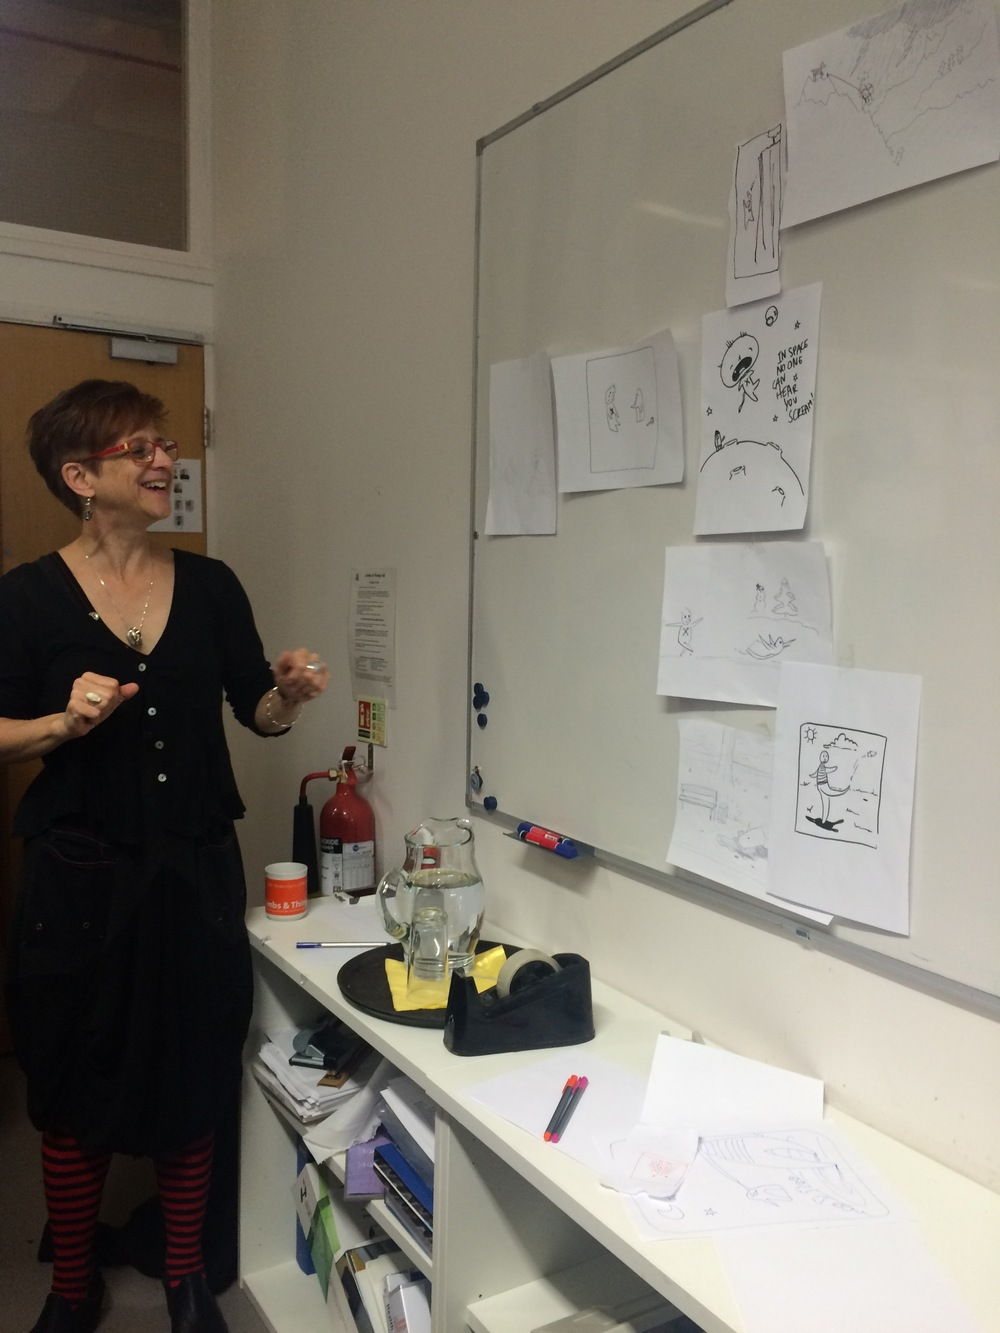 Shelley Wall, Faculty of Medicine, University of Toronto, held the Visual Storytelling the workshop